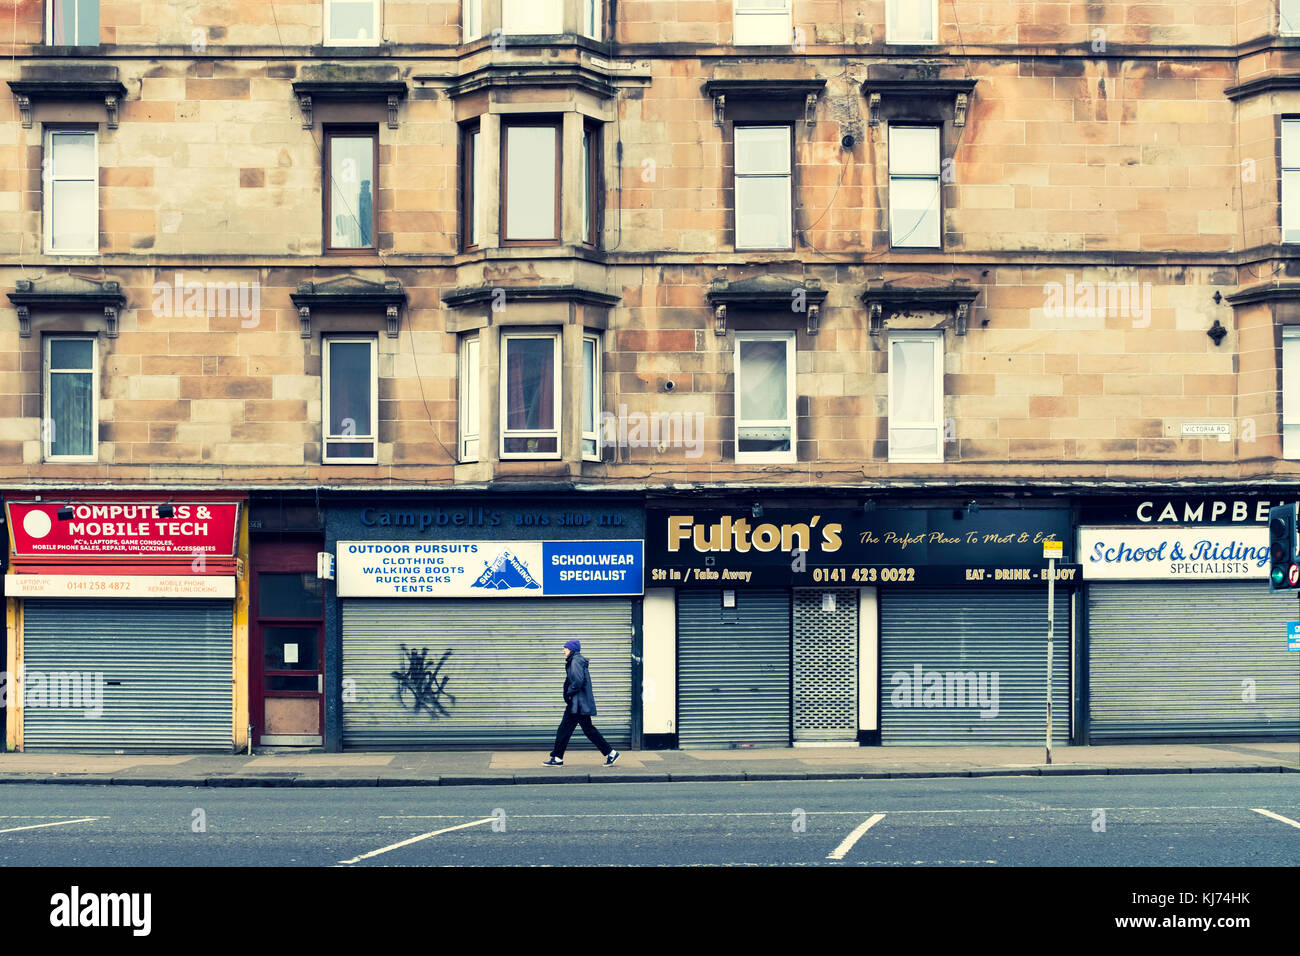 Shops glasgow stock photos shops glasgow stock images for Apartments with shops below